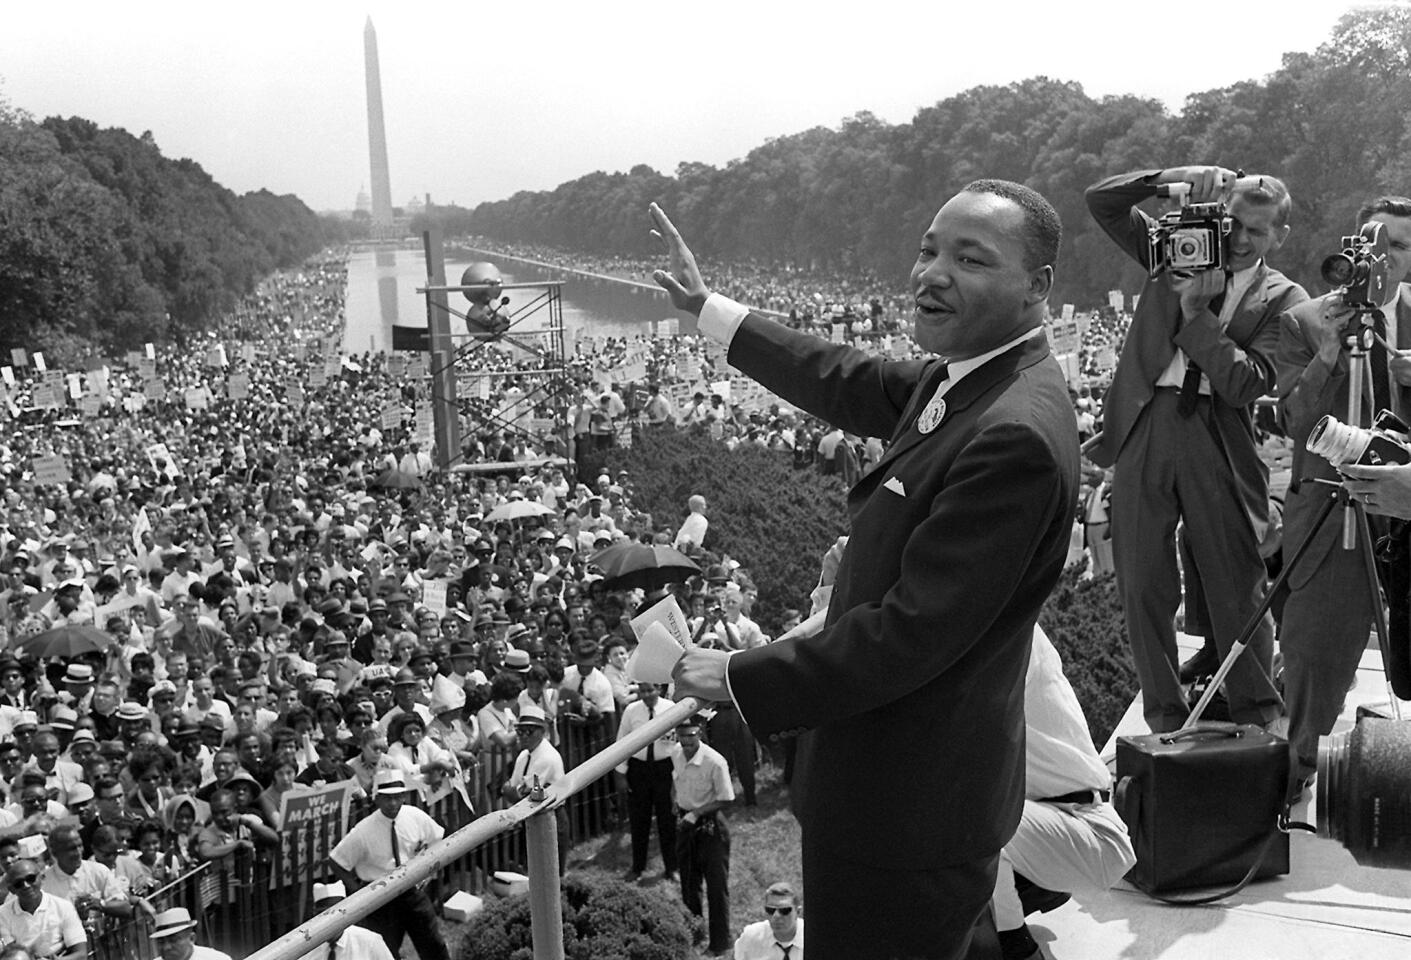 Civil rights leader Martin Luther King Jr. waves to supporters from the steps of the Lincoln Memorial on the Mall in Washington, D.C.